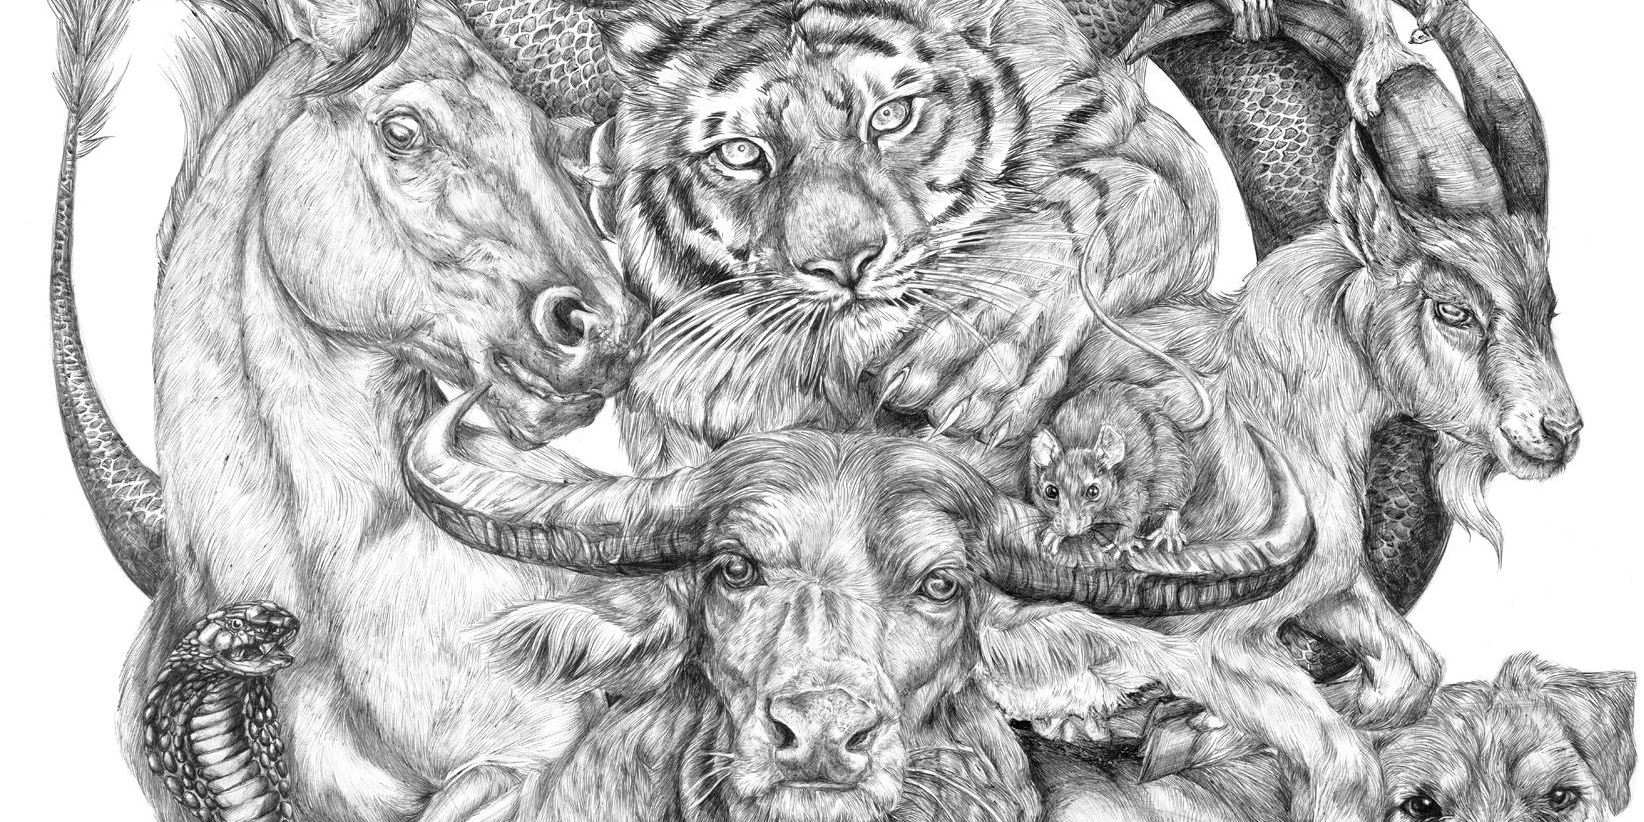 19-Year-Old Artist Spent All Summer Creating This Massive Chinese Zodiac Drawing